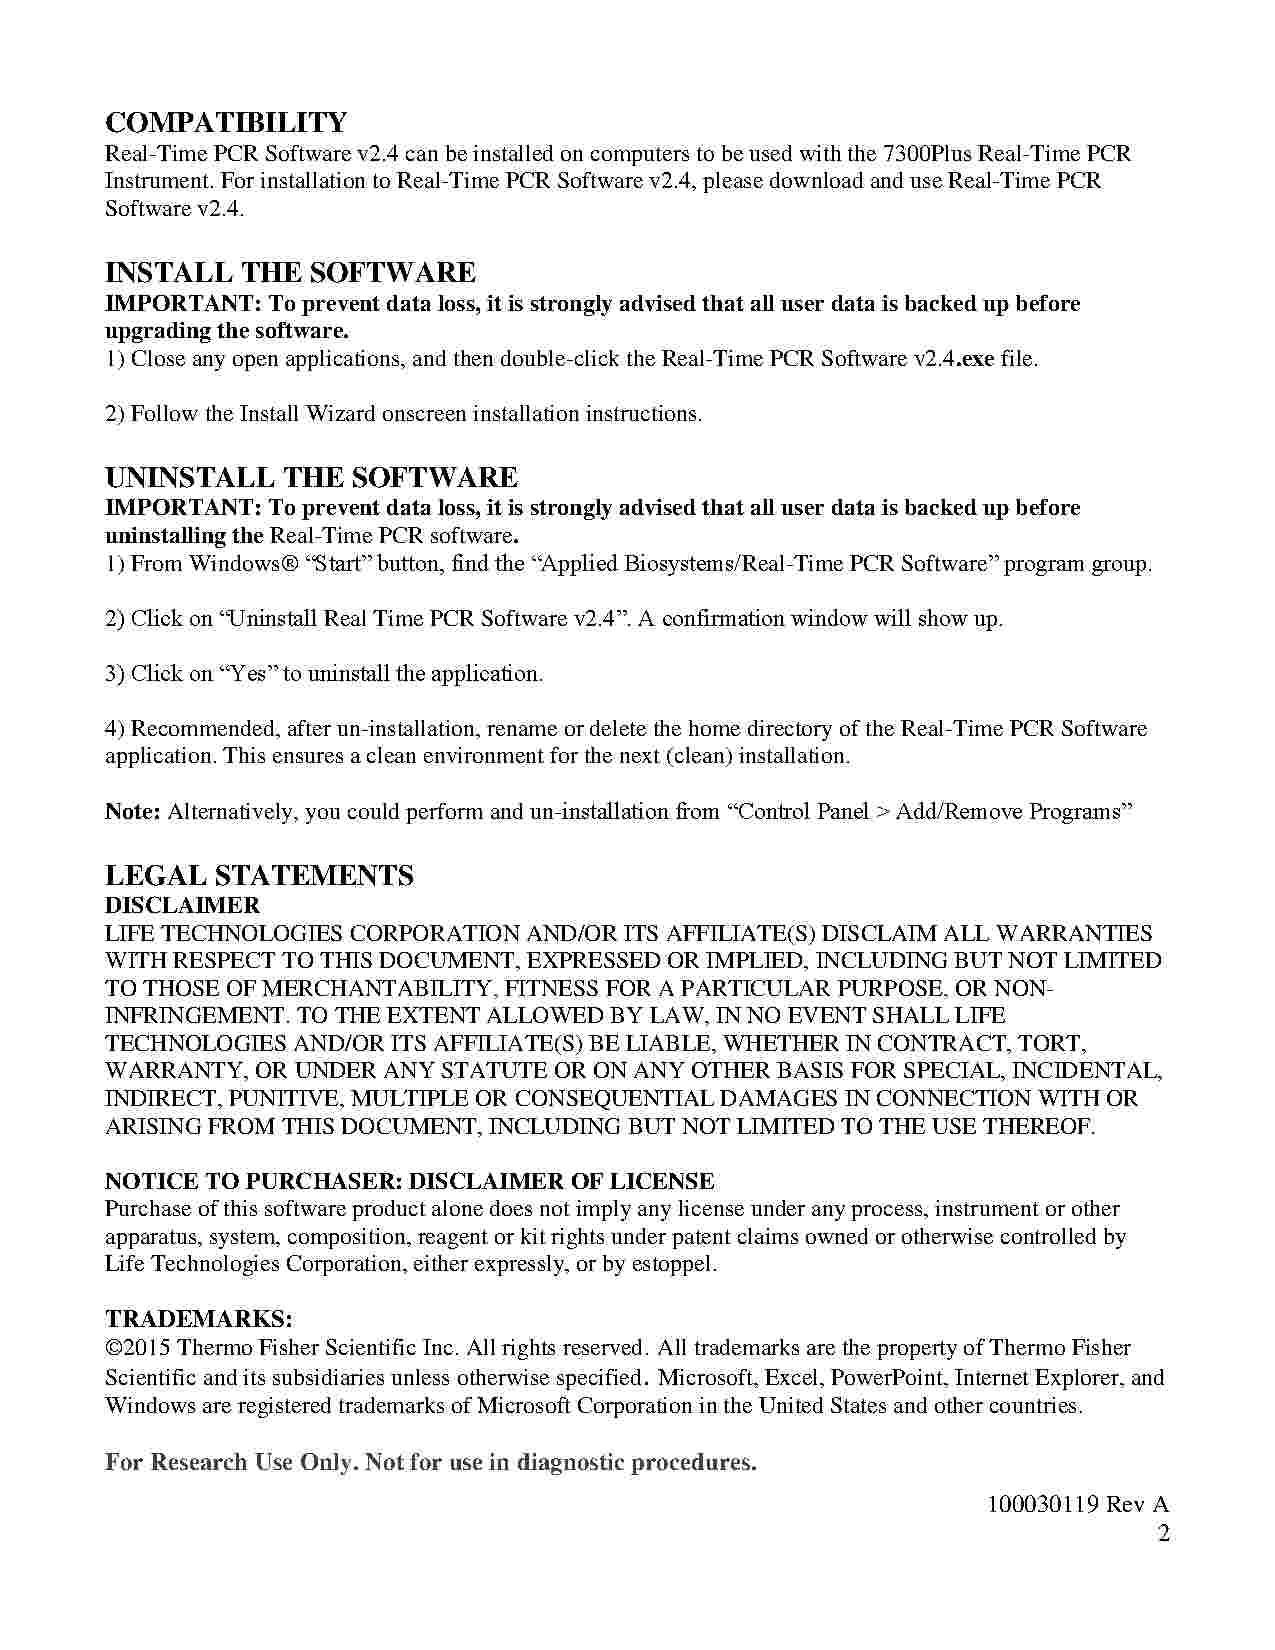 License Agreement Template Free Download